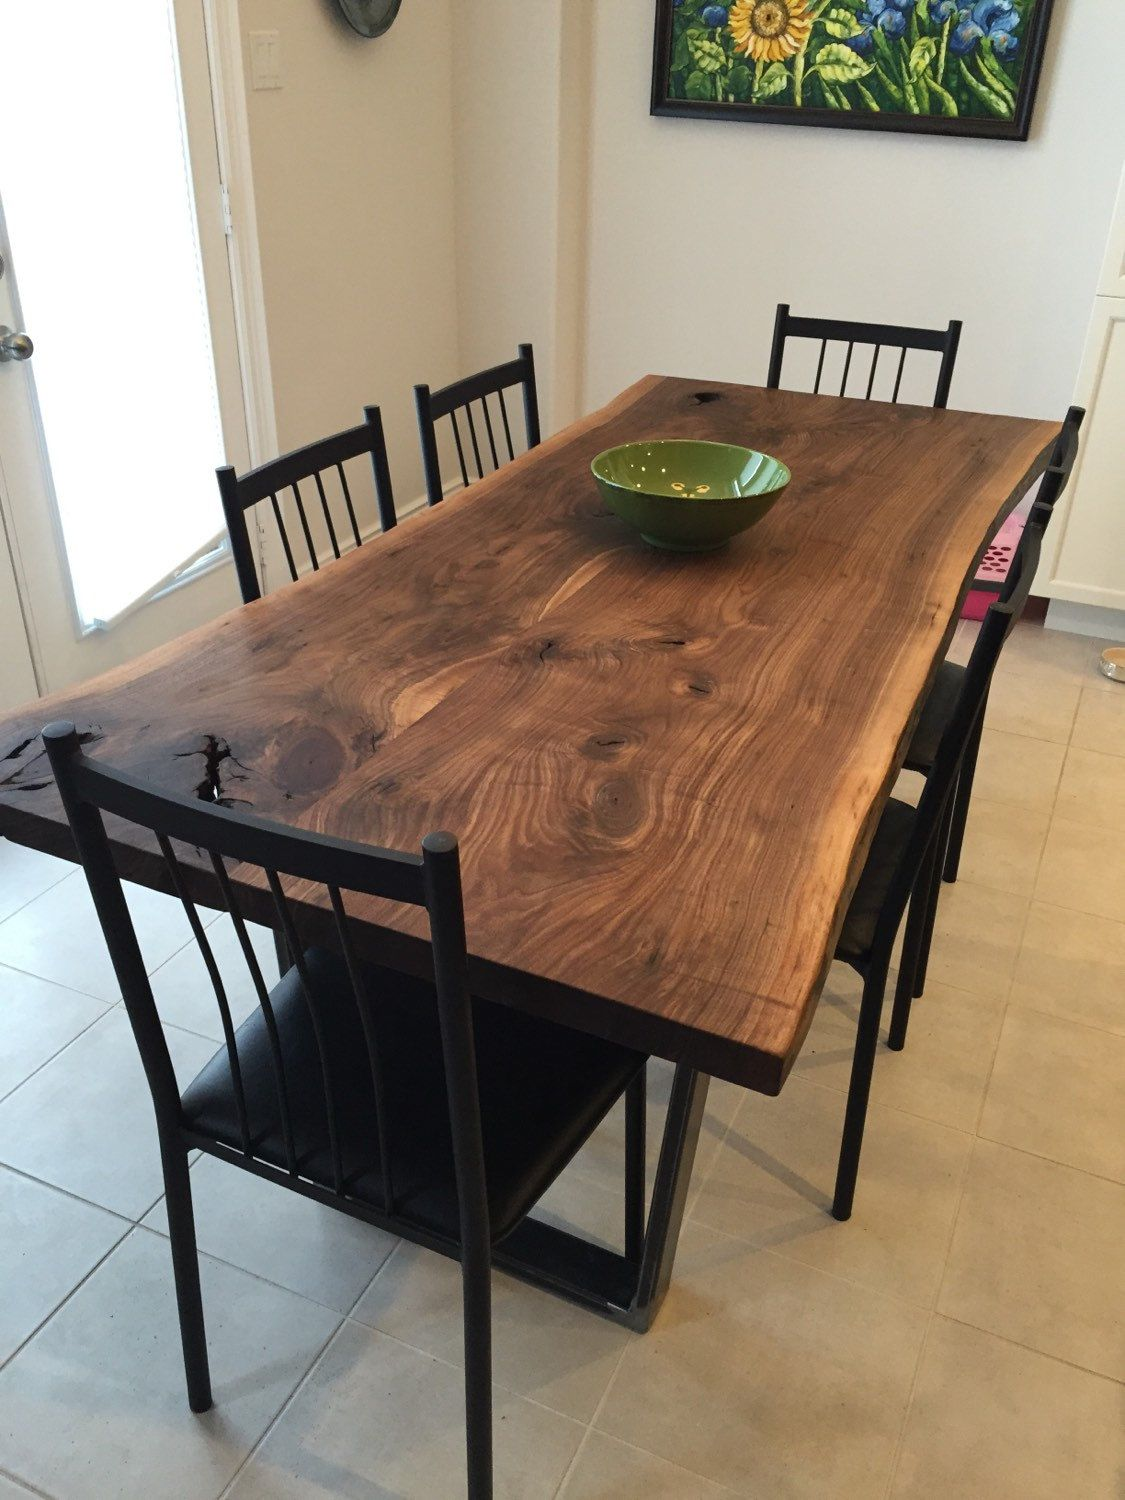 Prime Live Edge Black Walnut Dining Table Free Shipping By Download Free Architecture Designs Sospemadebymaigaardcom